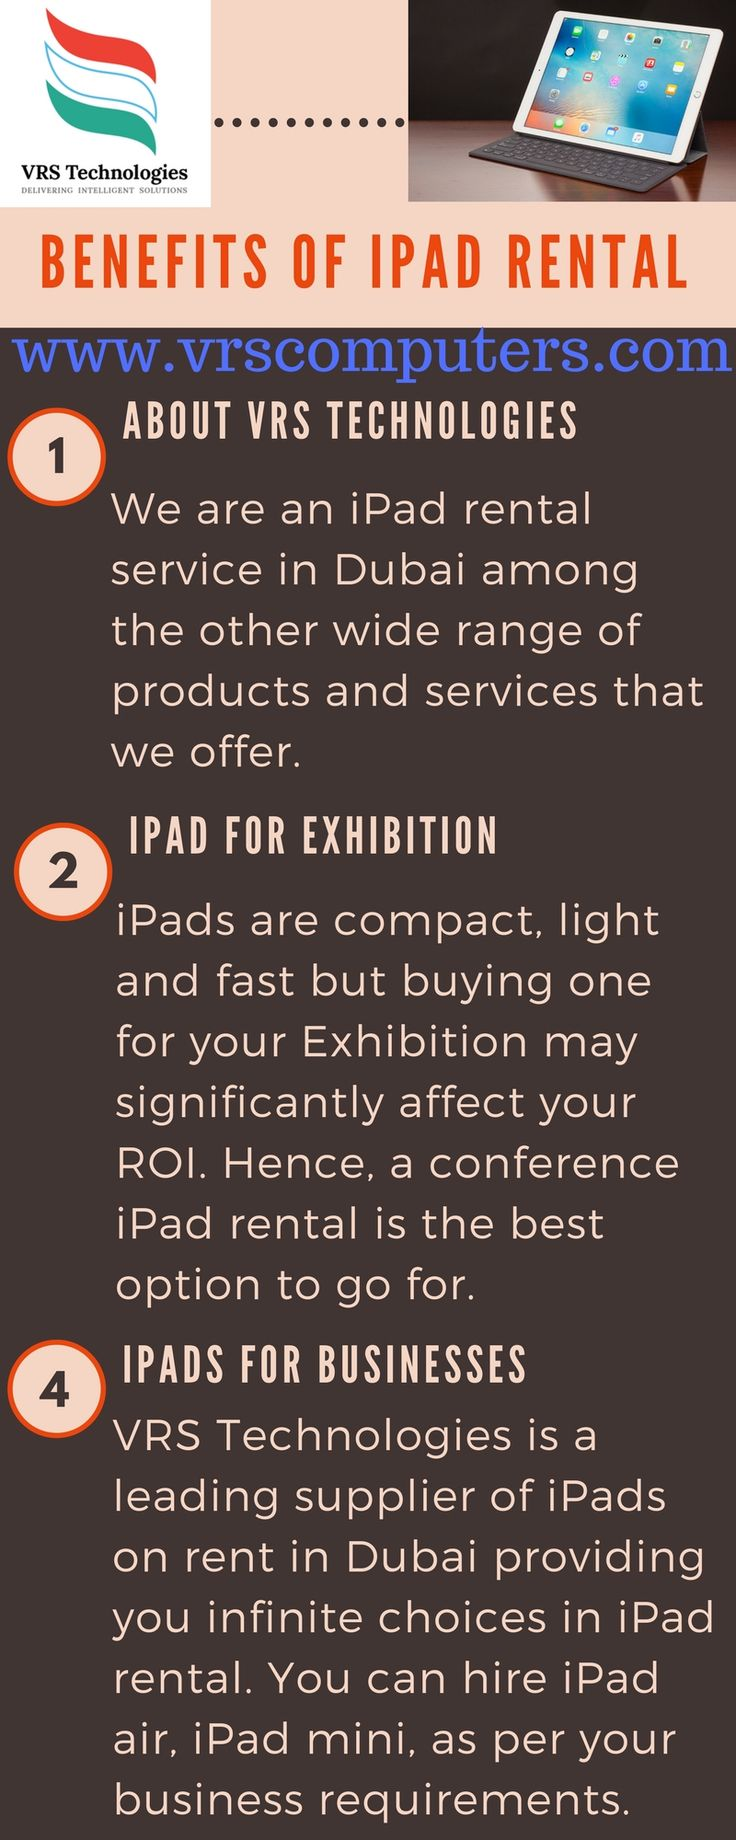 VRS Technologies encourage you to try your hand with the latest iPads on #Rent and find out what you can unfold with the #Apple iPads.call us:  +971-55-5182748.  #ipadRent #iPadRental #iPadHire #dubai #appleipad #HIre #lease #vrstechnologies